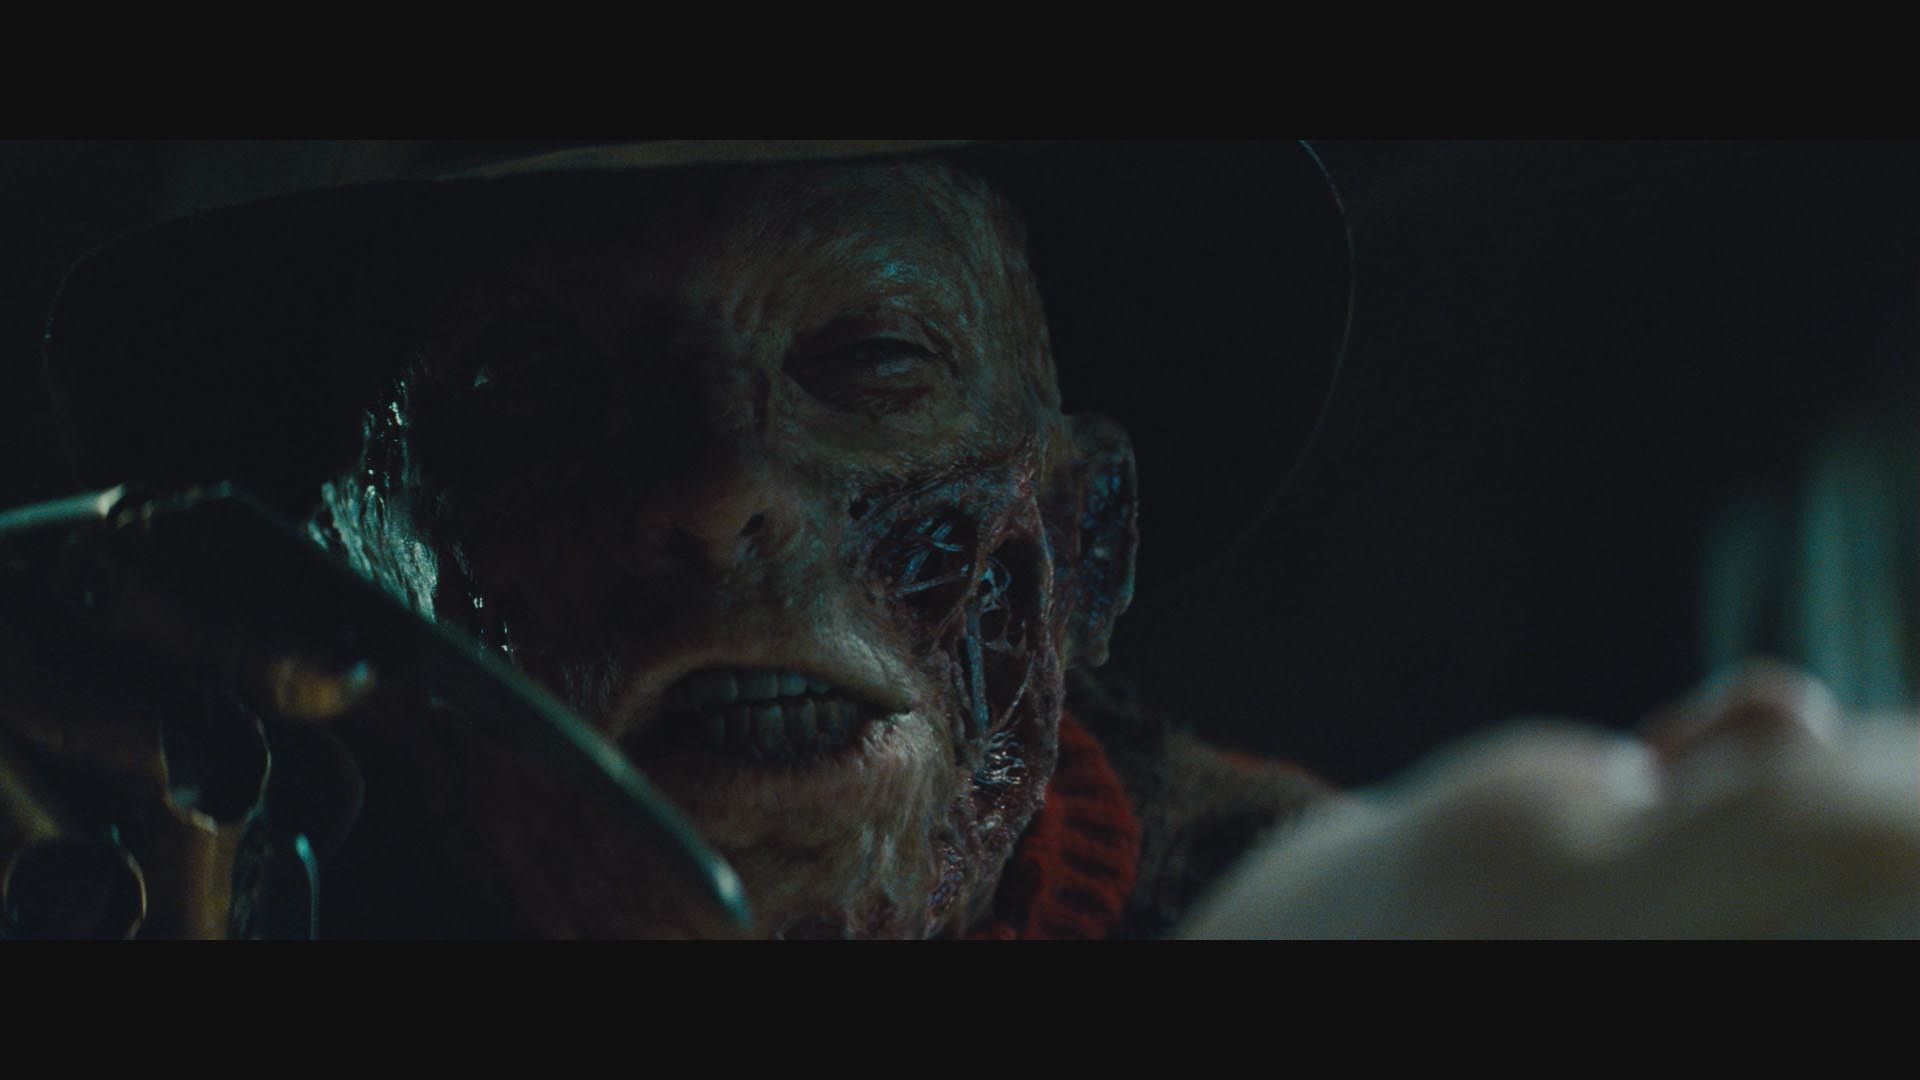 Freddy krueger wallpaper hd 43 images - Pictures of freddy cougar ...